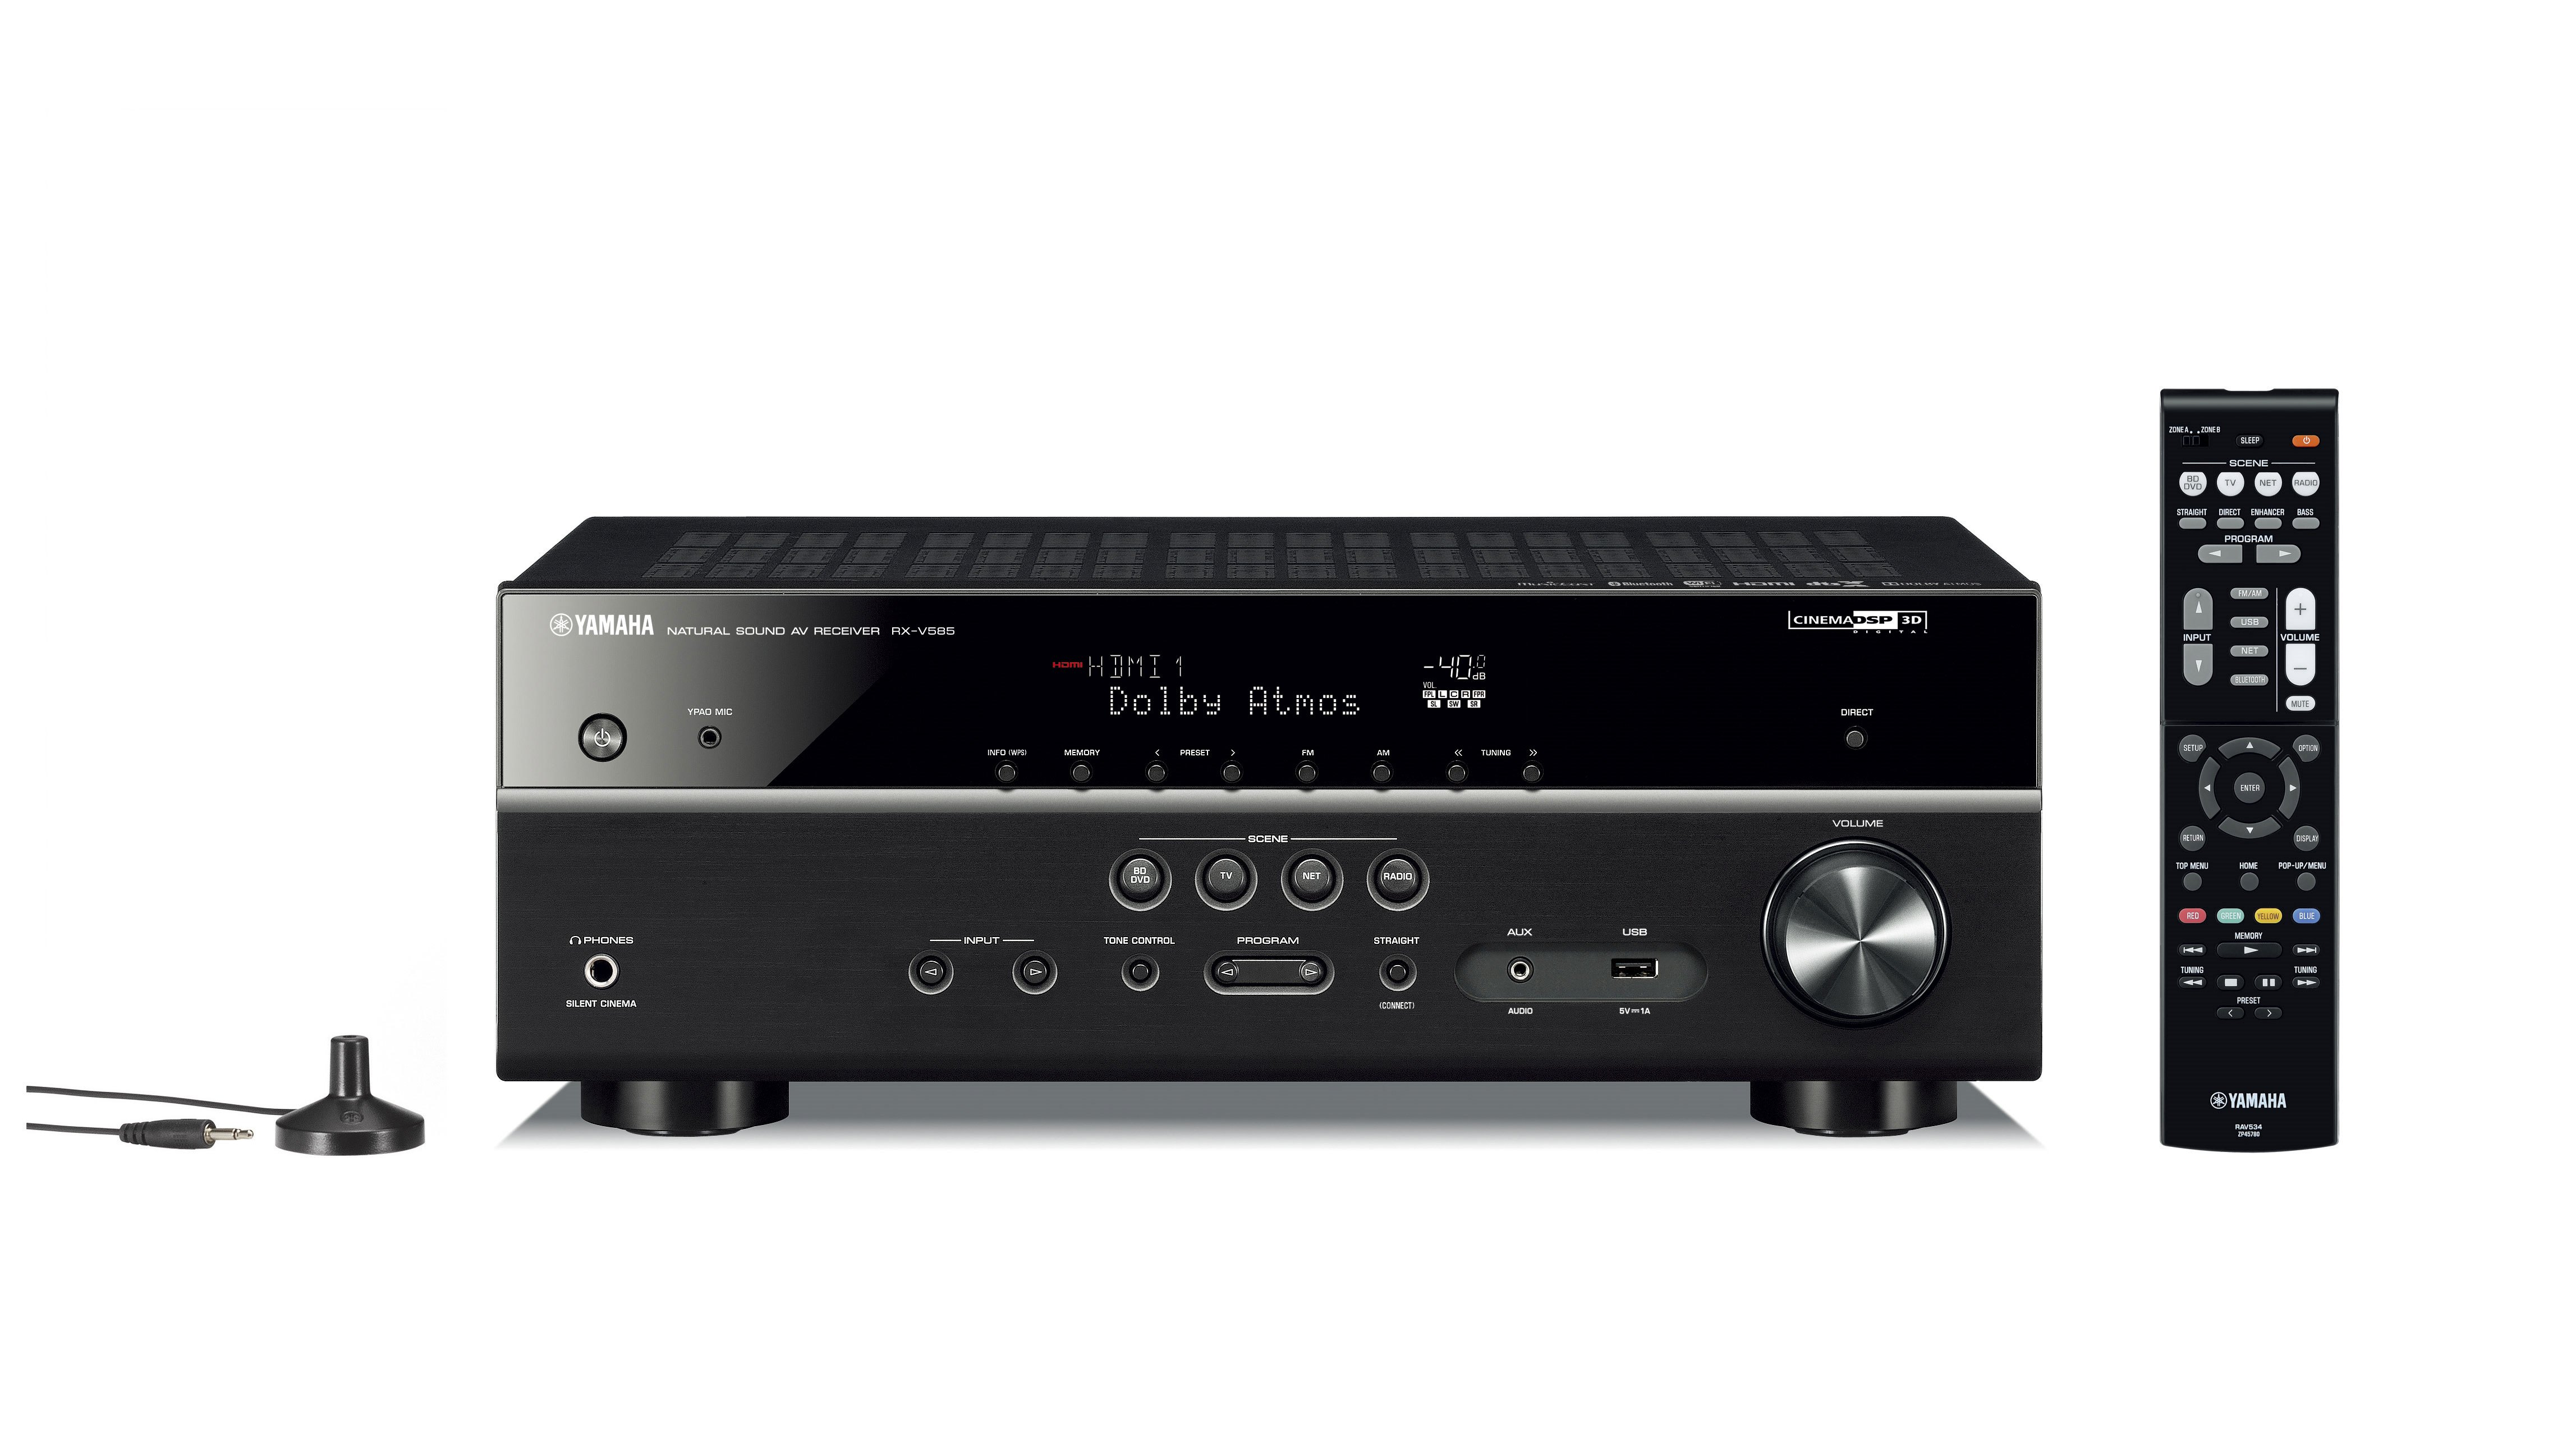 RX-V585 - Support - AV Receivers - Audio & Visual - Products